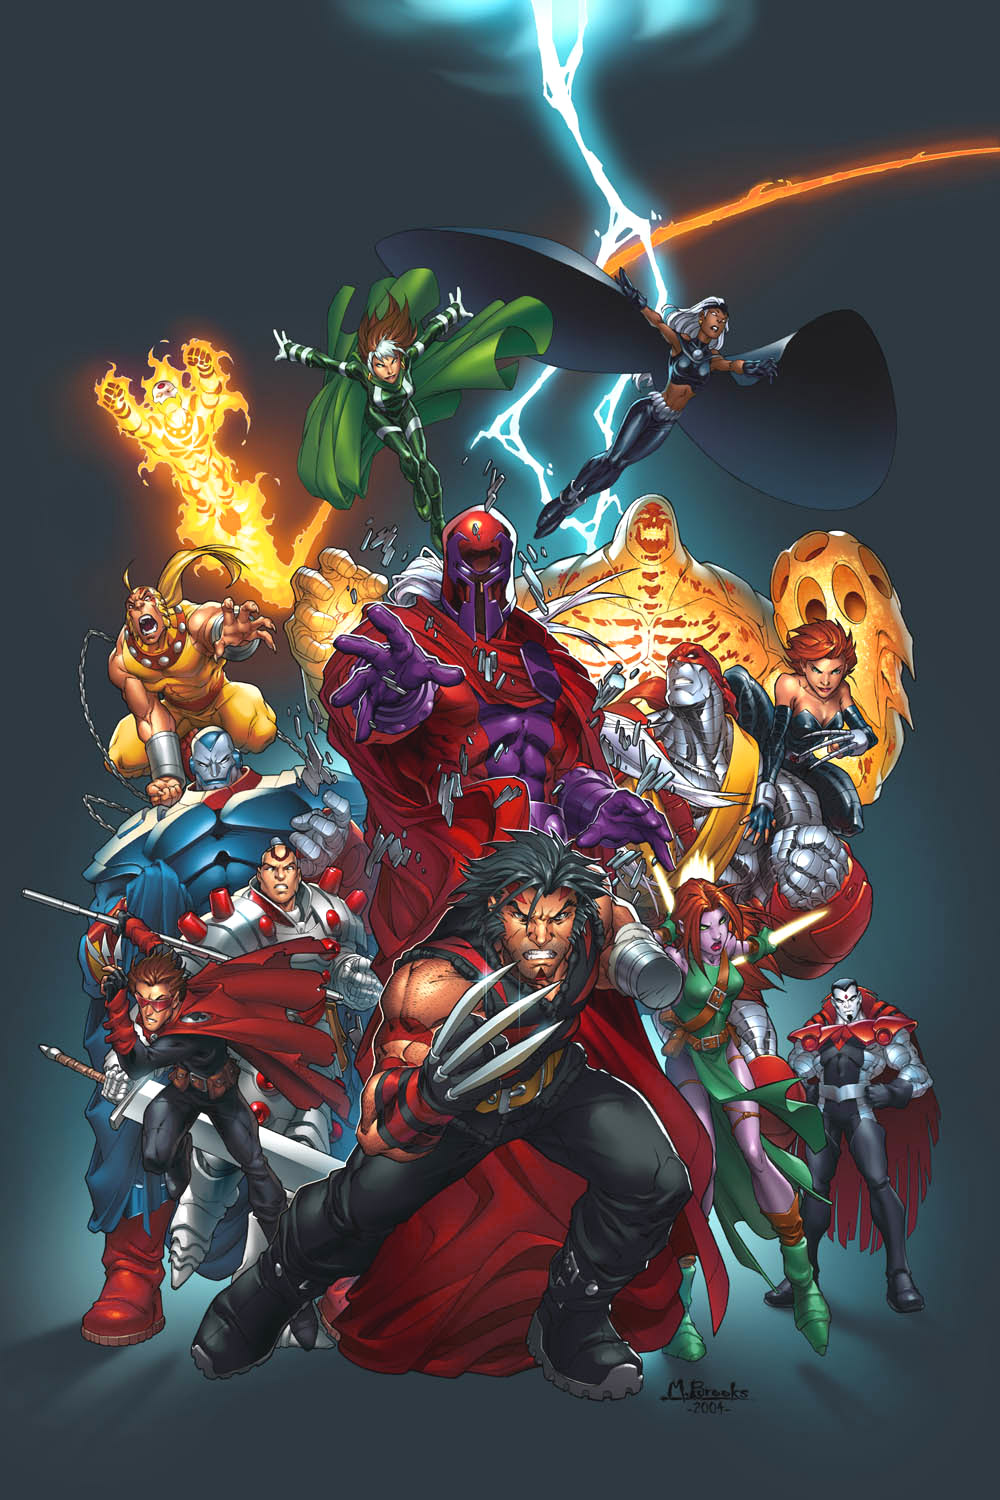 Artwork and characters are copyright/trademark Marvel; used under Fair Use